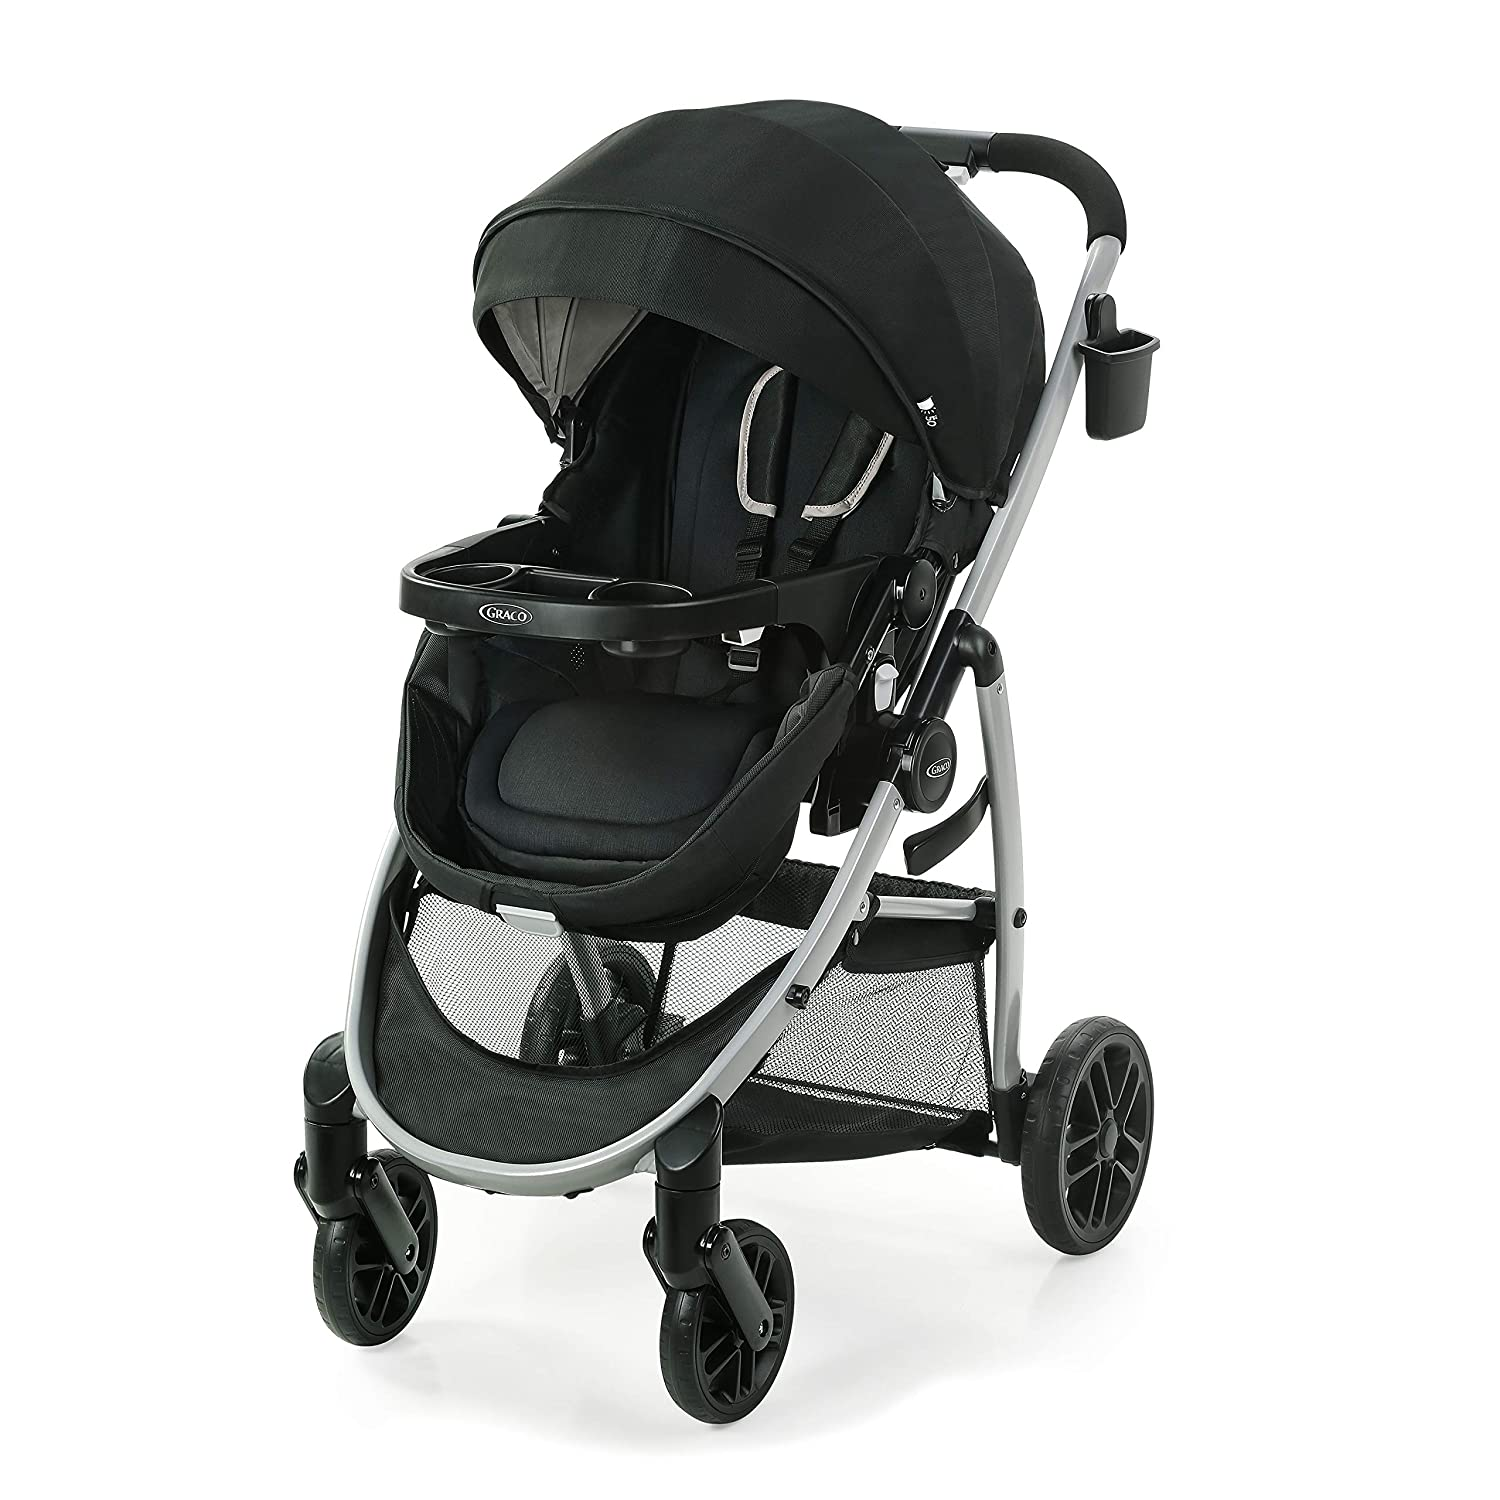 Graco Modes Pramette Stroller, Baby Stroller with True Bassinet Mode, Reversible Seat, One Hand Fold, Extra Storage, Child Tray, Pierce